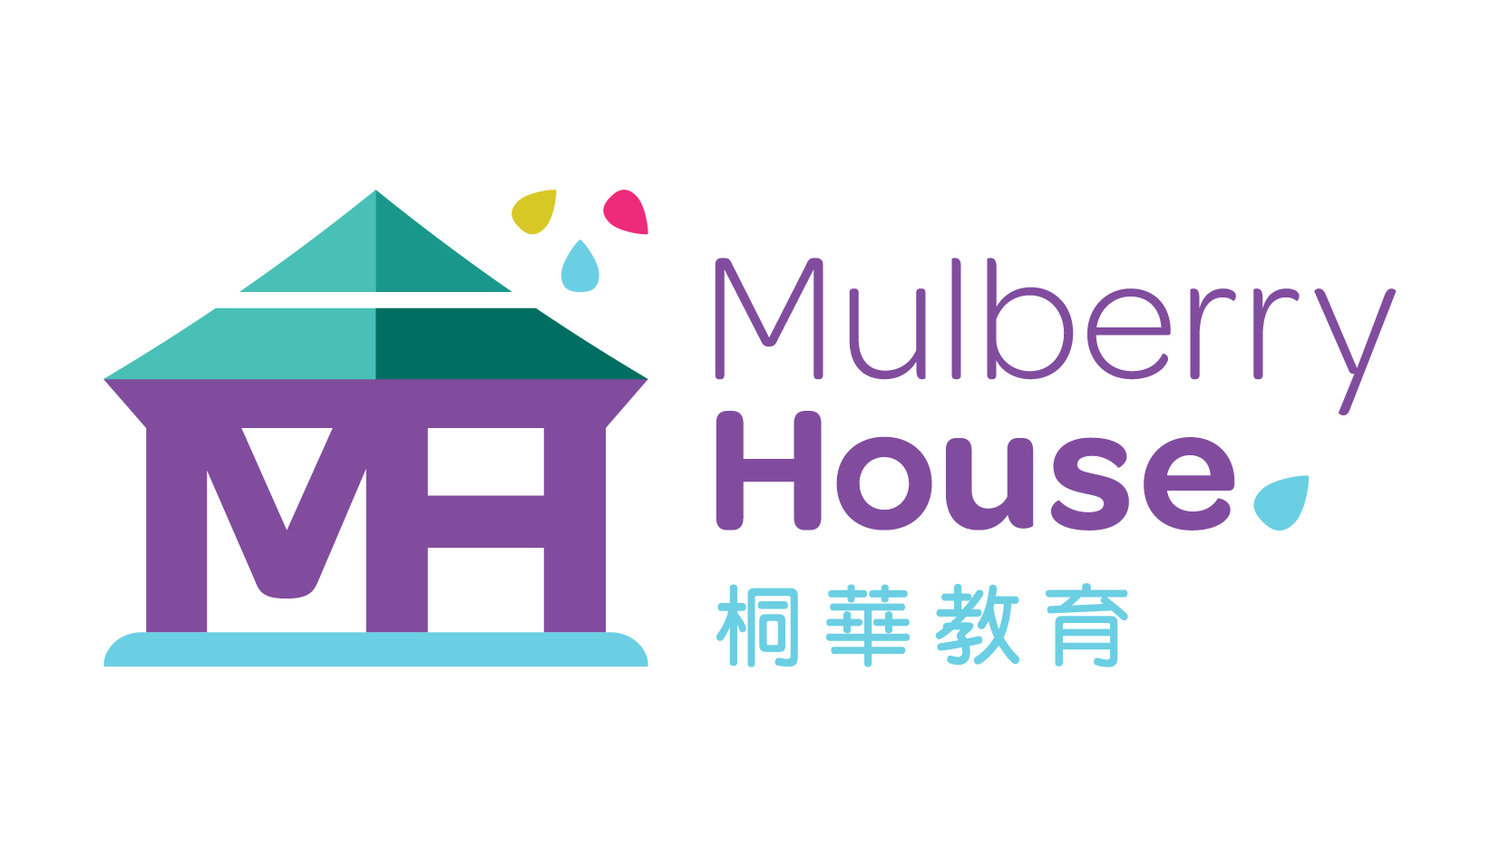 Mulberry House ‎桐華教育 - Mandarin Immersion School (0-8 YRS)